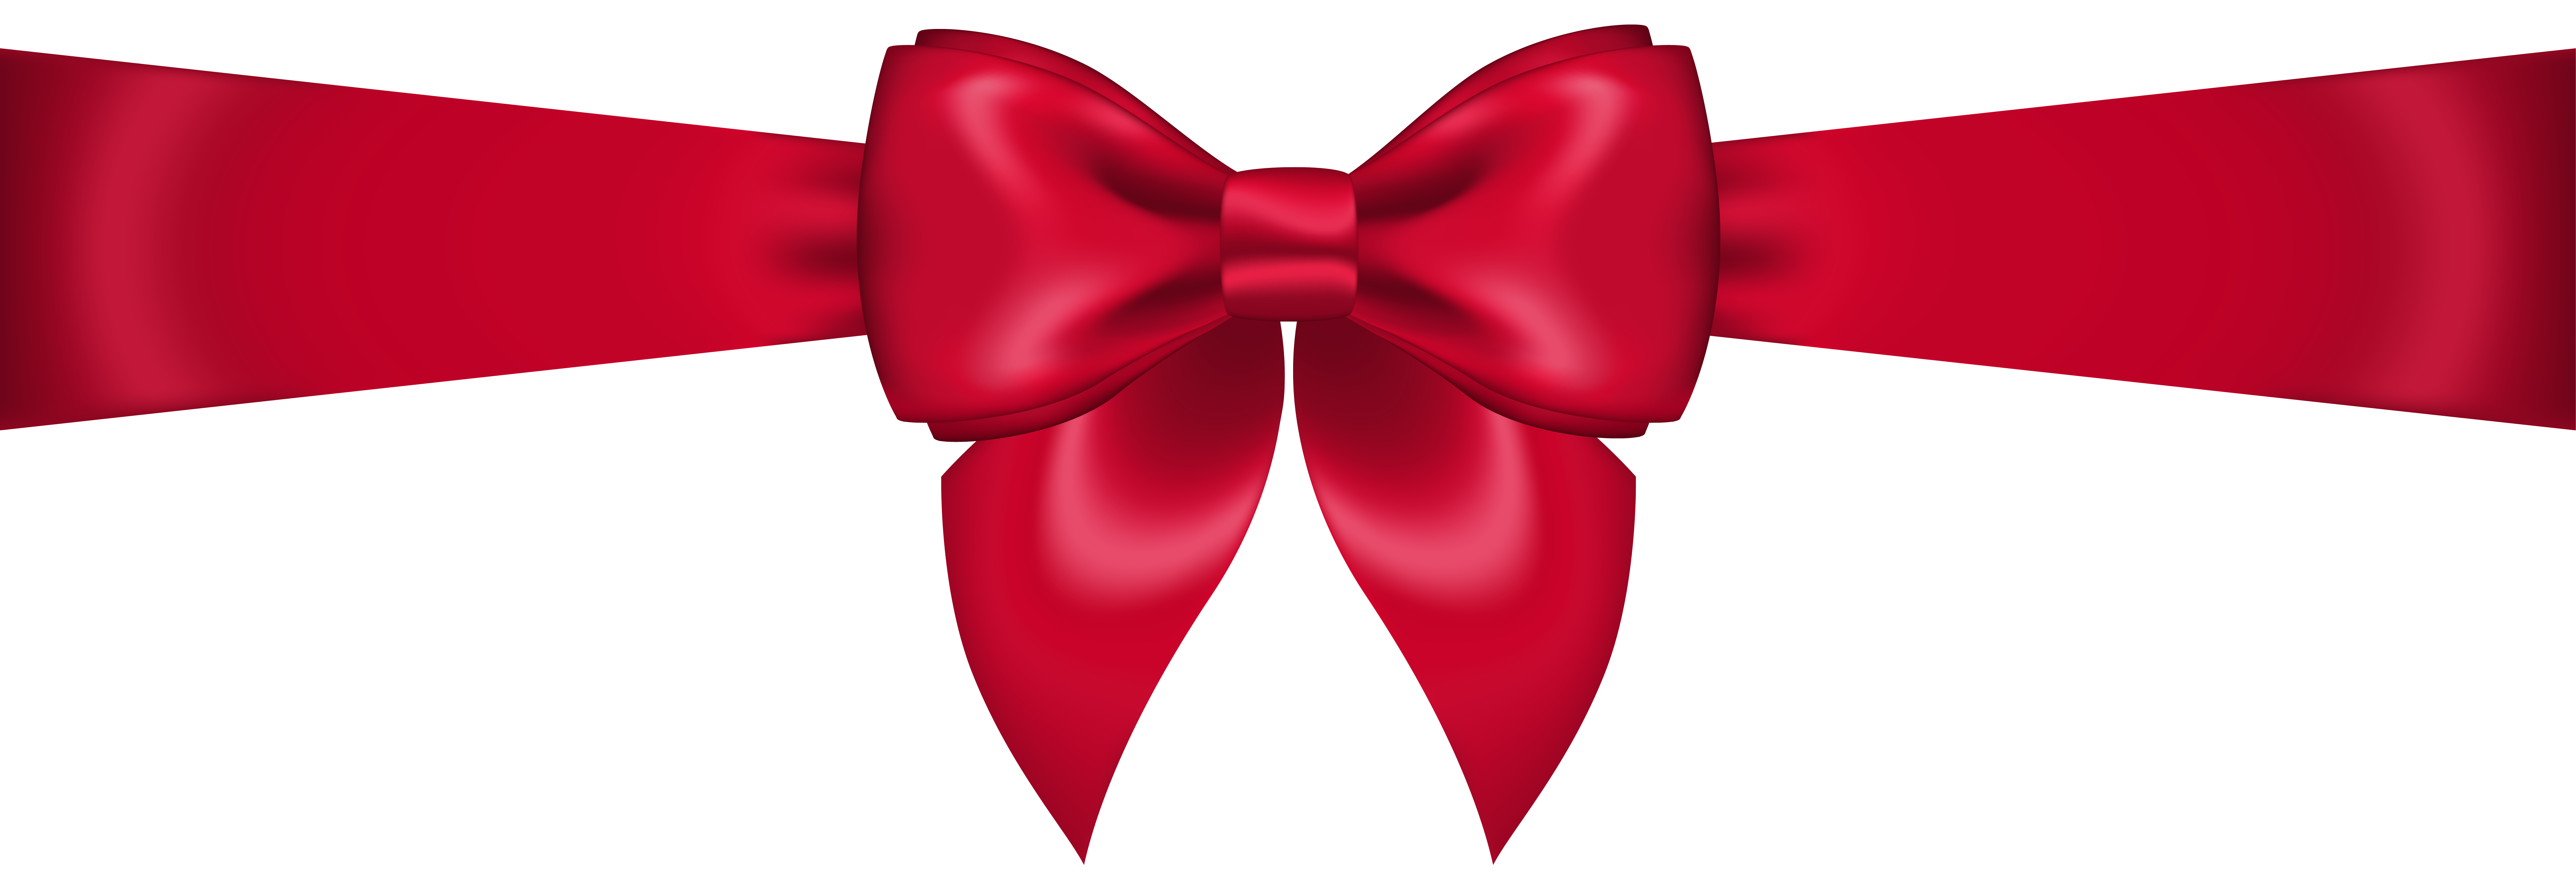 Ribbon Clipart With Transparent Background.